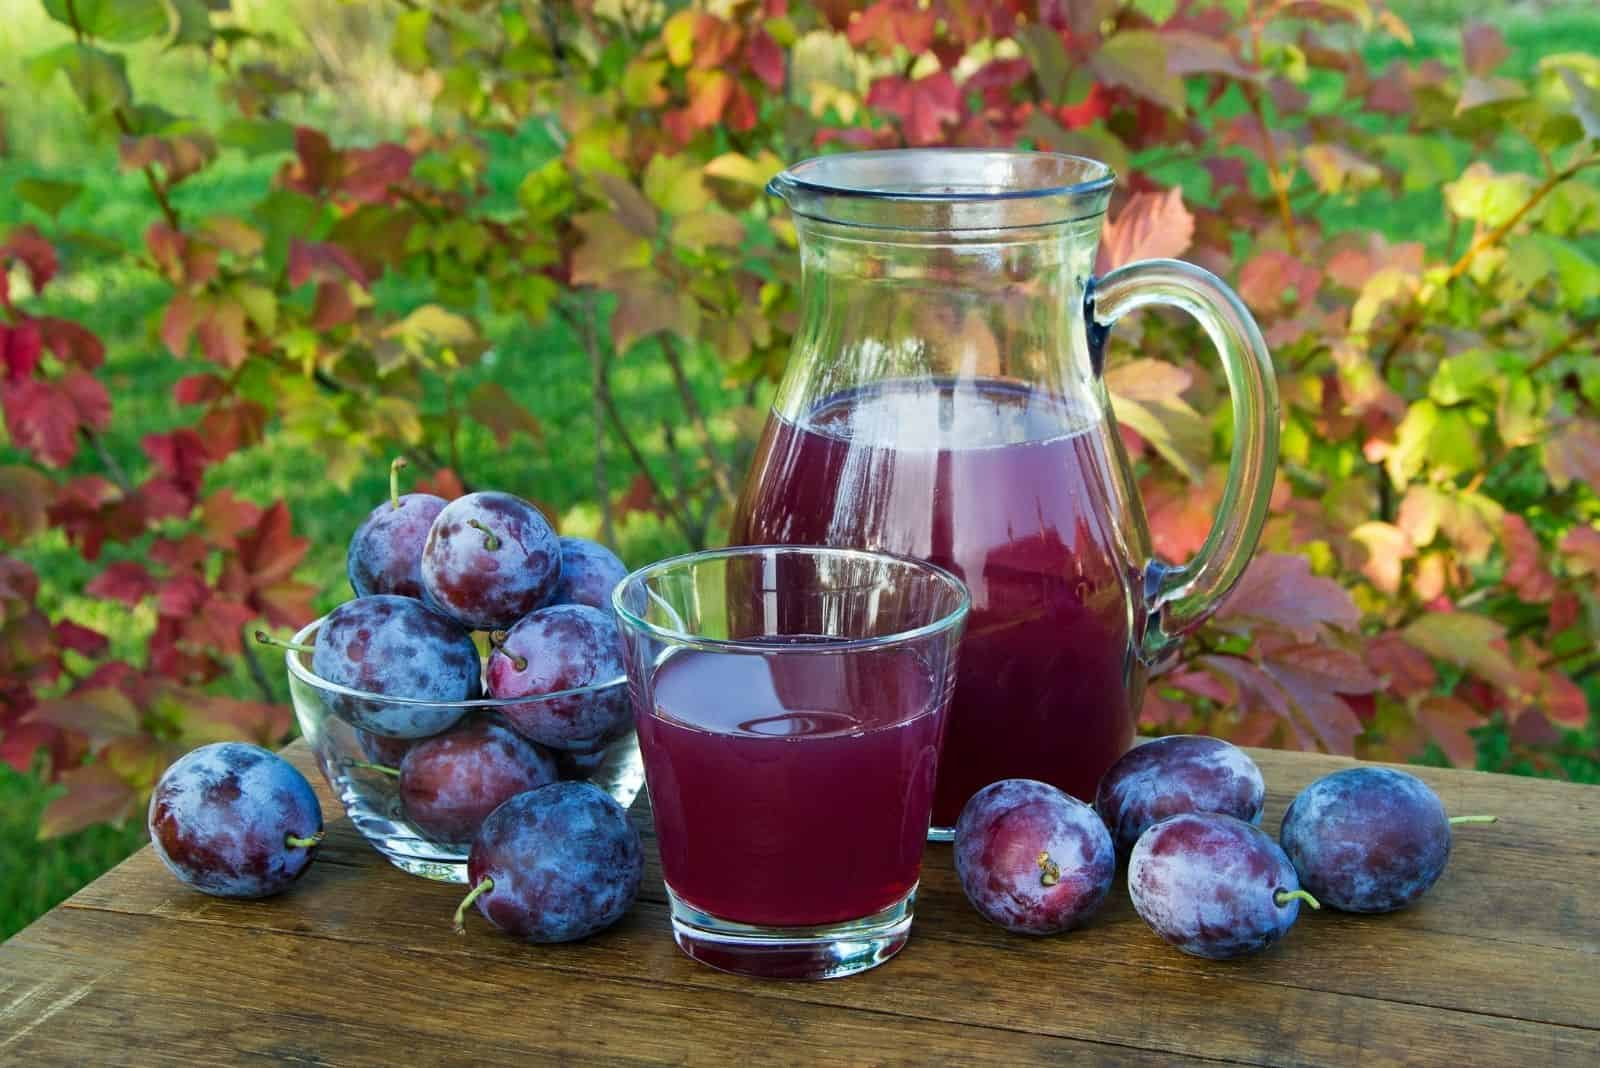 prune juice in the carafe with fresh plums on the glass